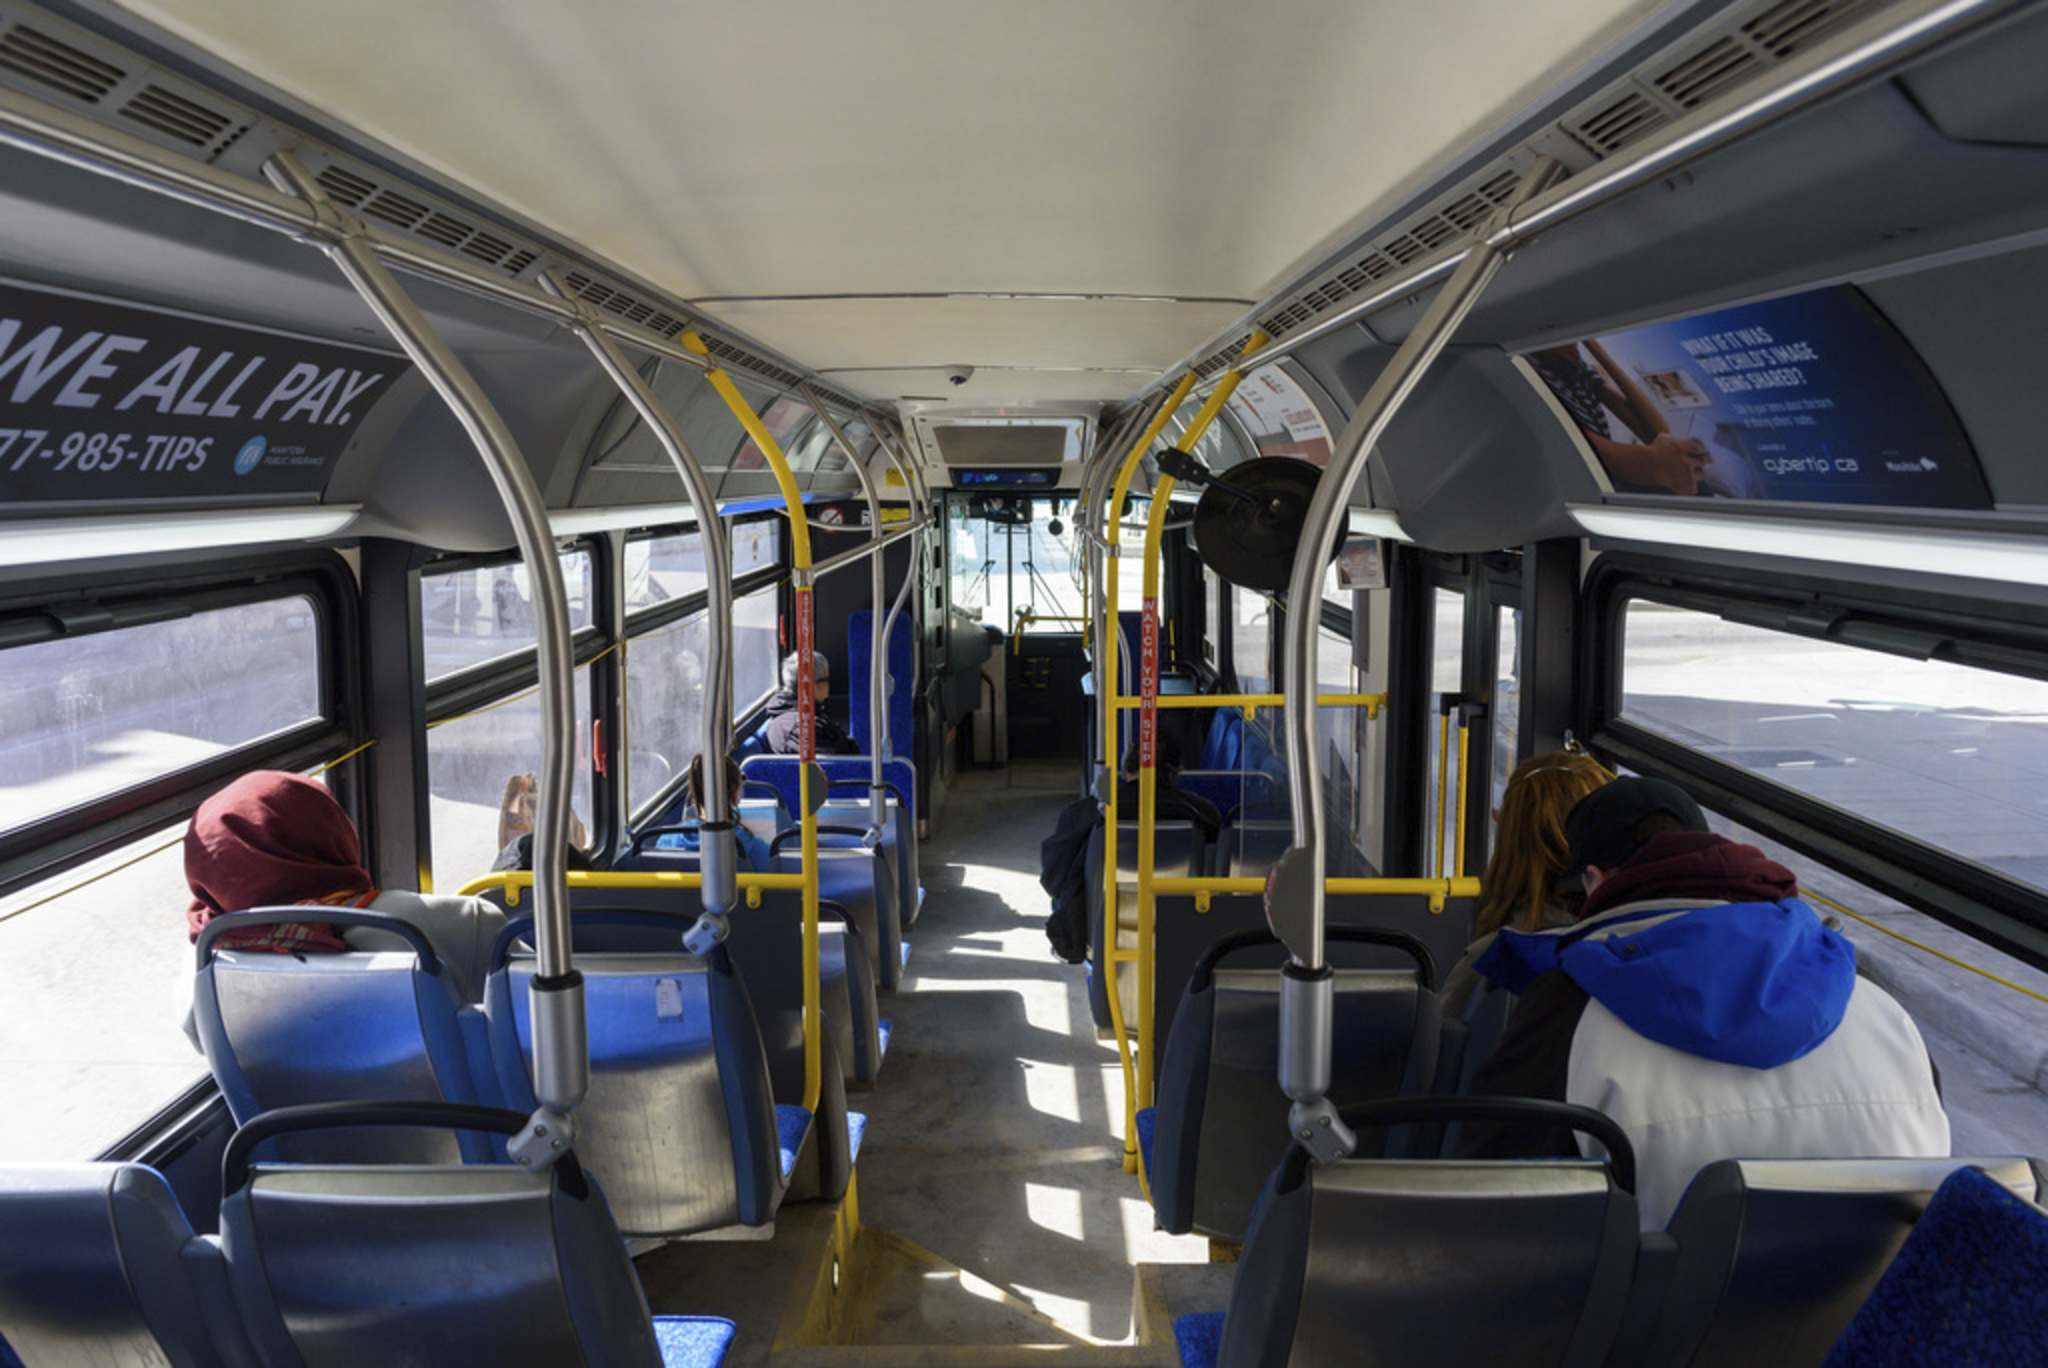 JESSE BOILY / WINNIPEG FREE PRESS</p><p>A recent poll suggests Manitobans are still uncomfortable taking public transit.</p>